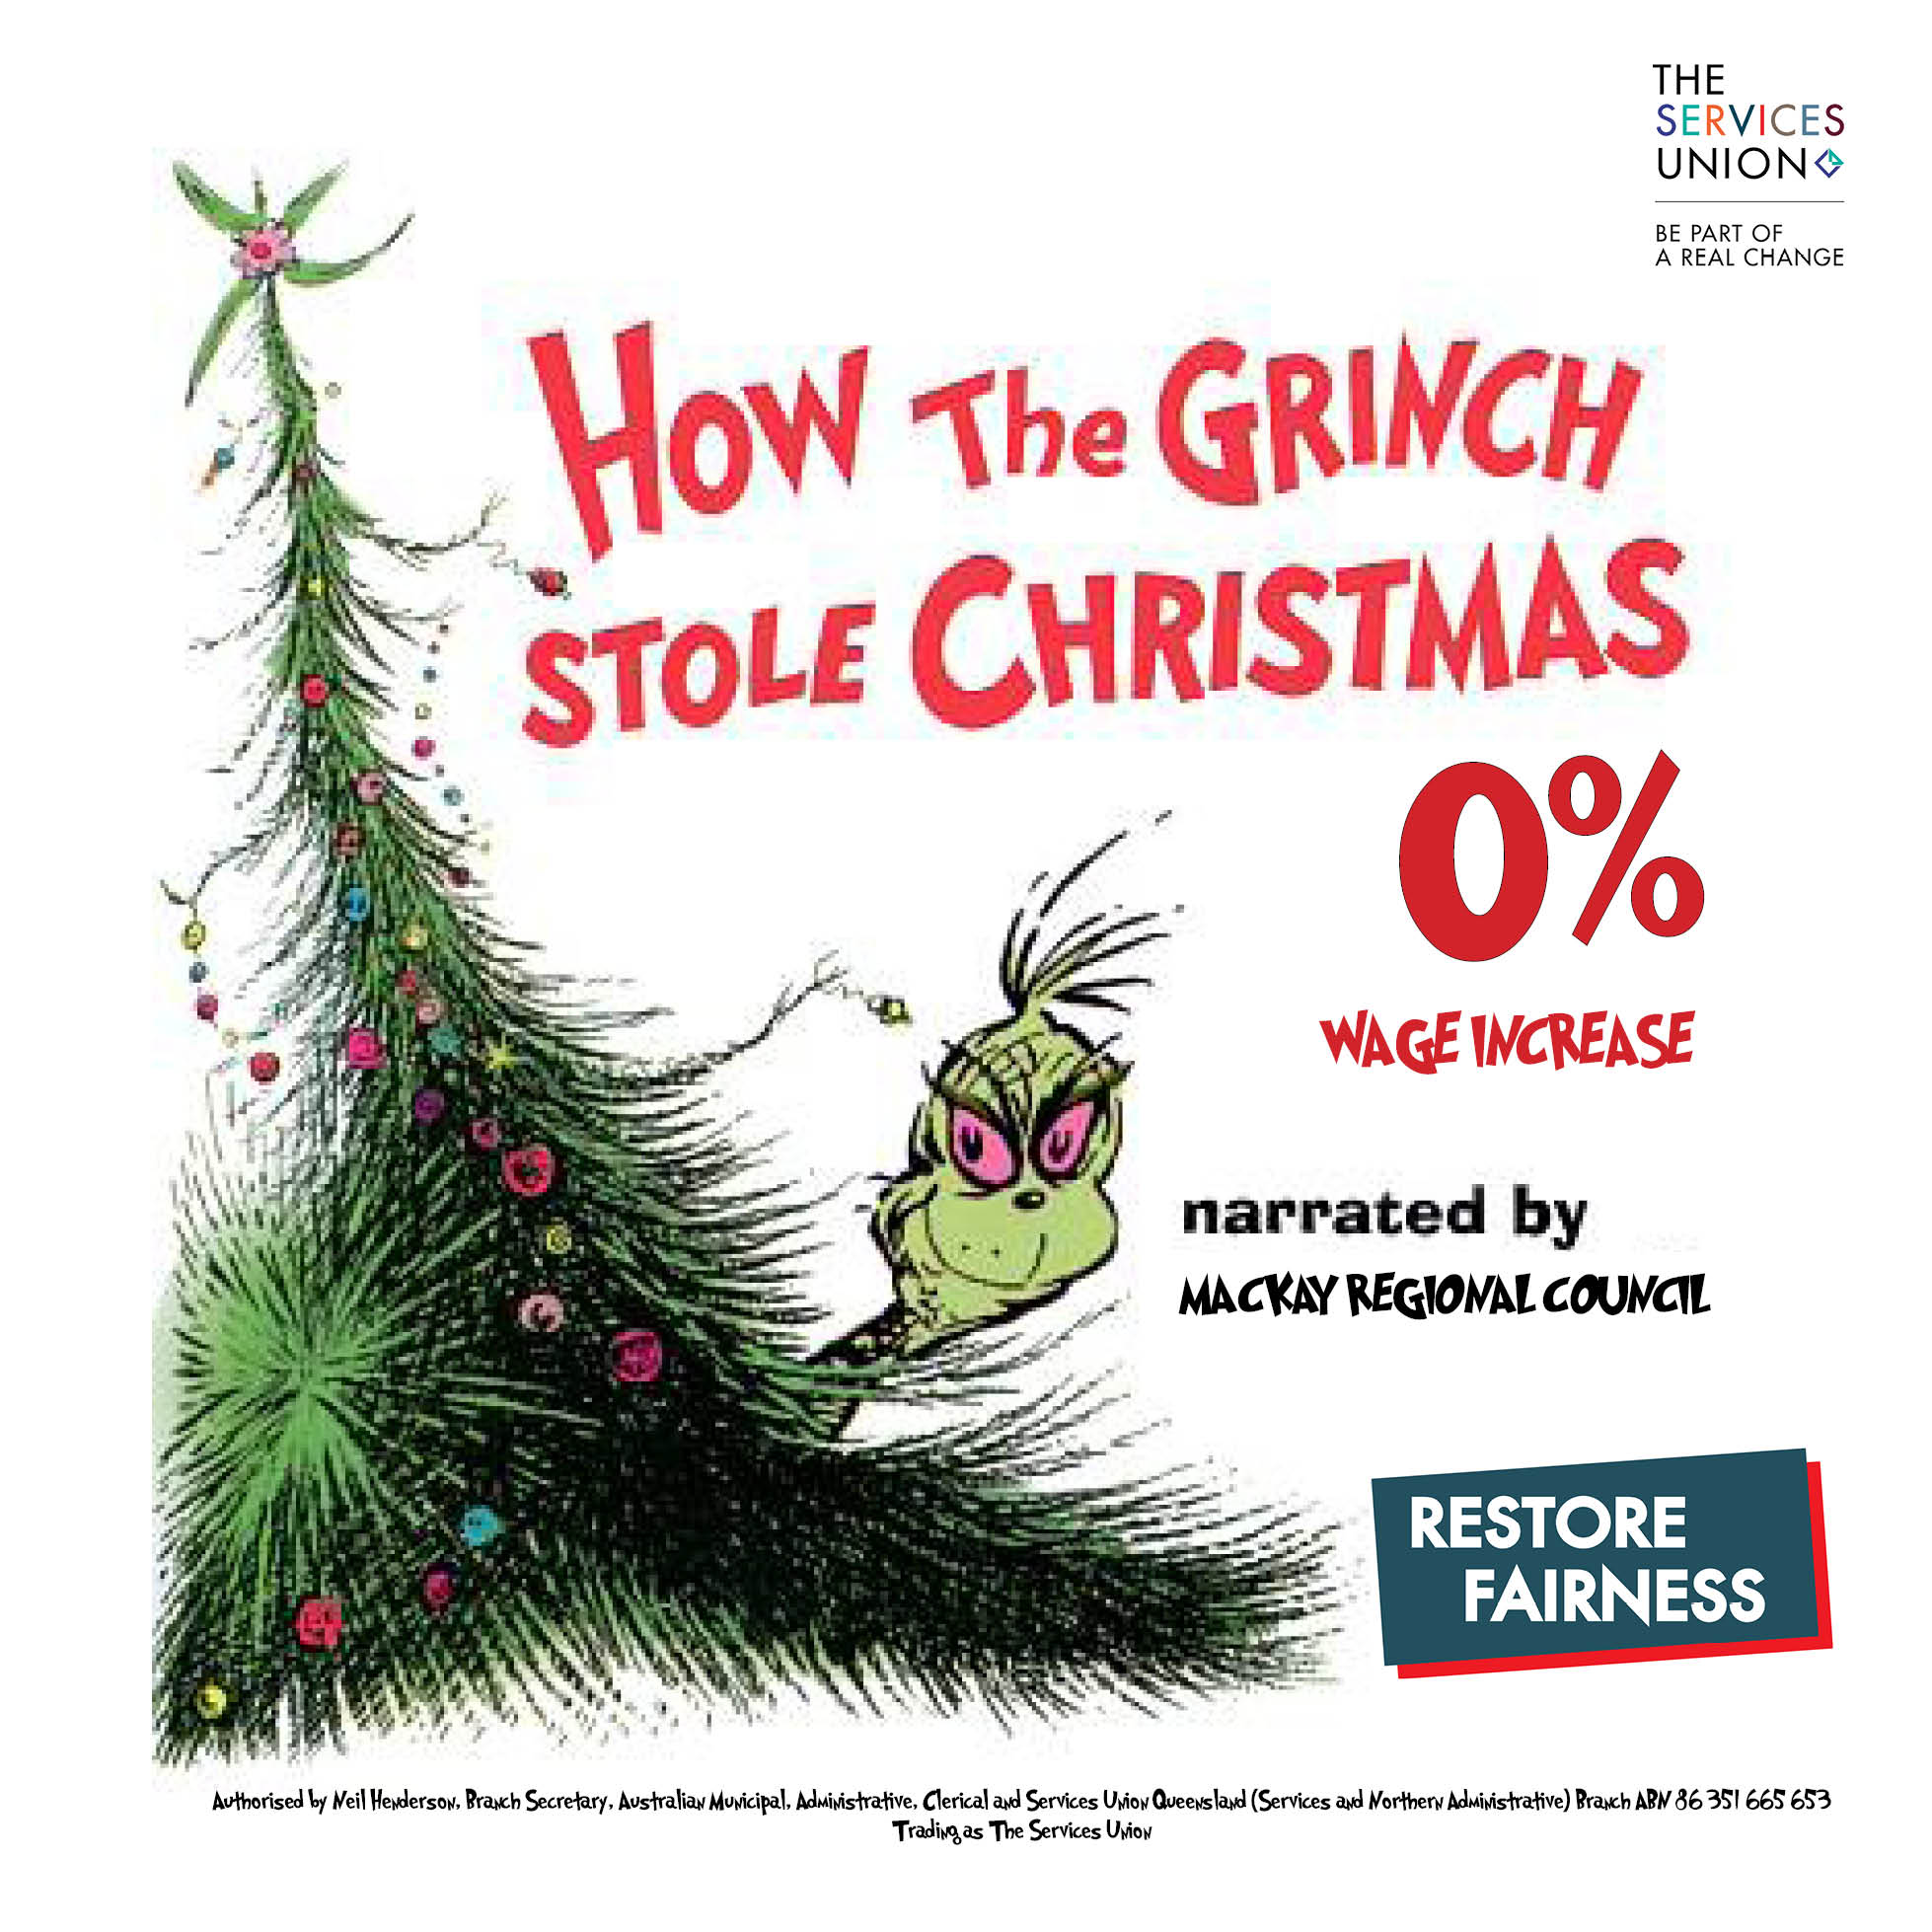 How The Grinch Stole Christmas at Mackay Regional Council! - The ...